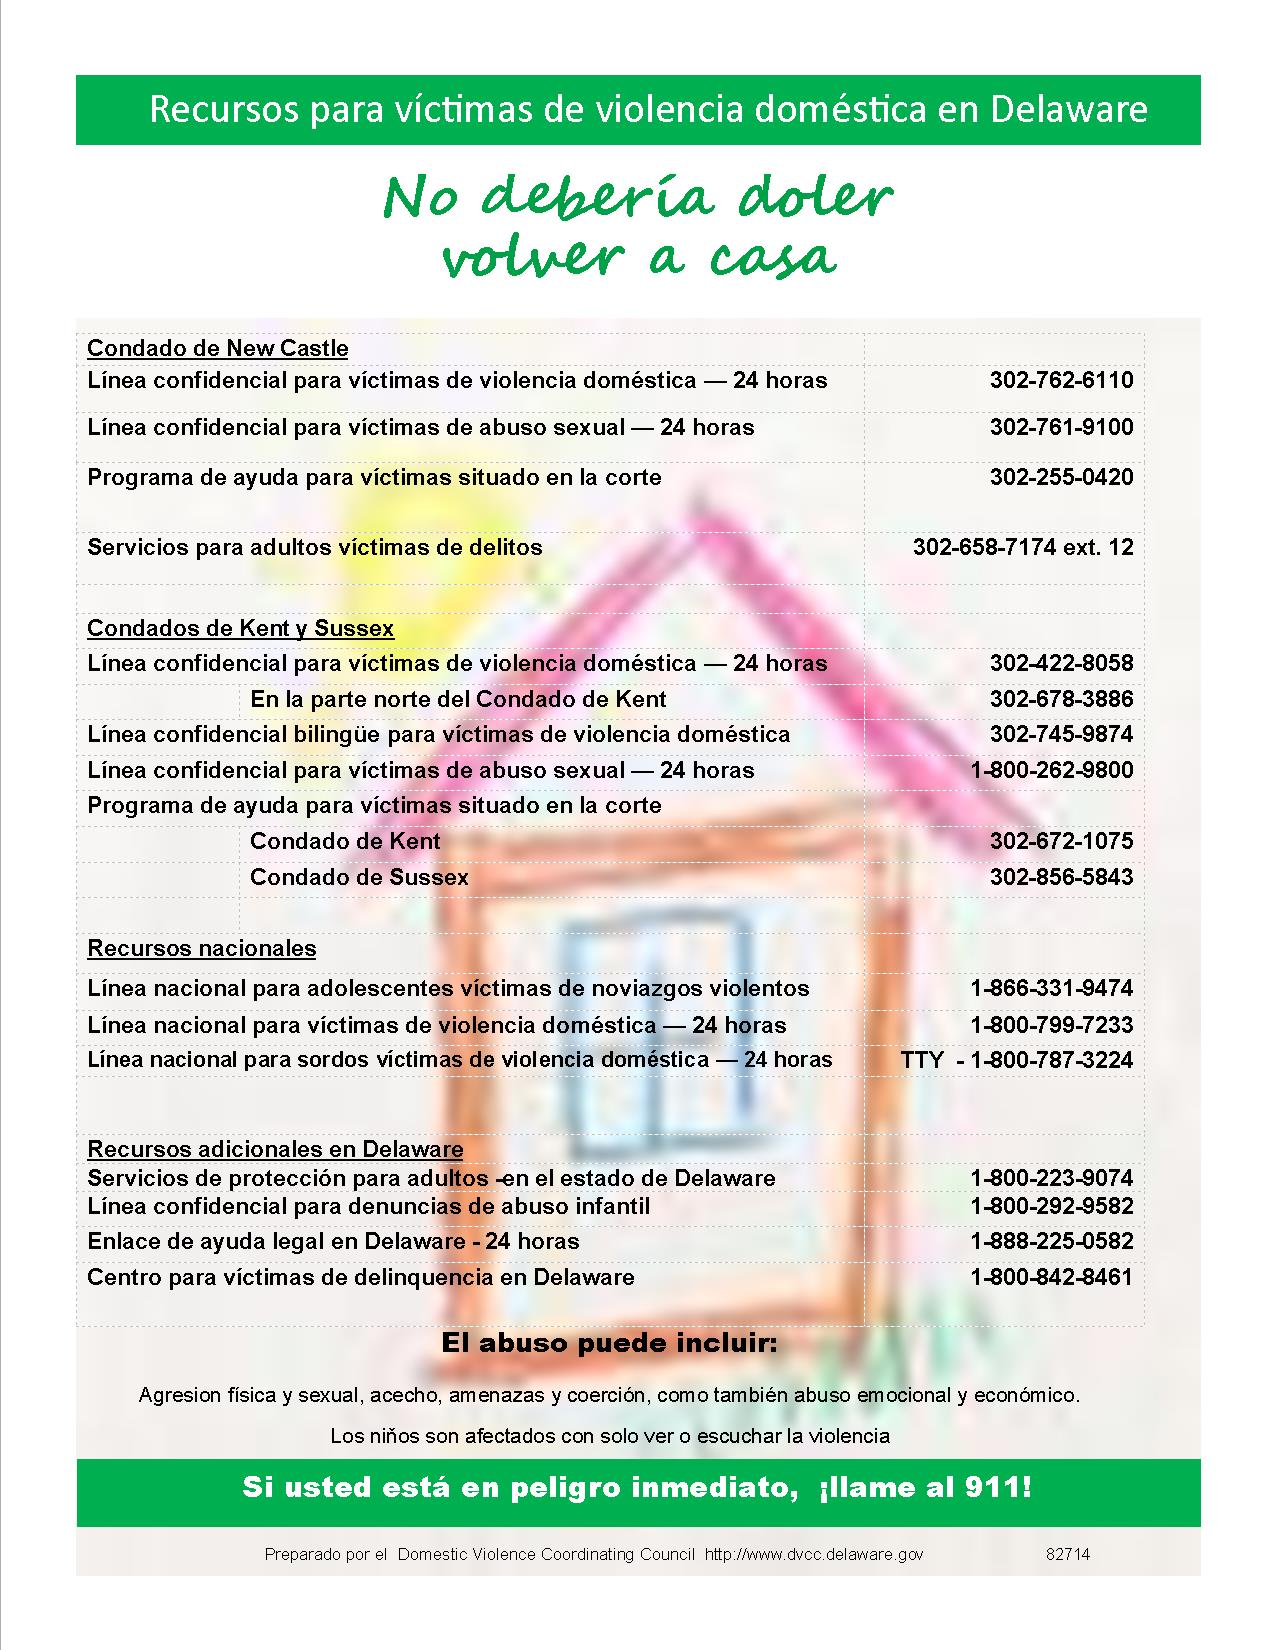 Picture of the DVCC Outreach Poster in Spanish